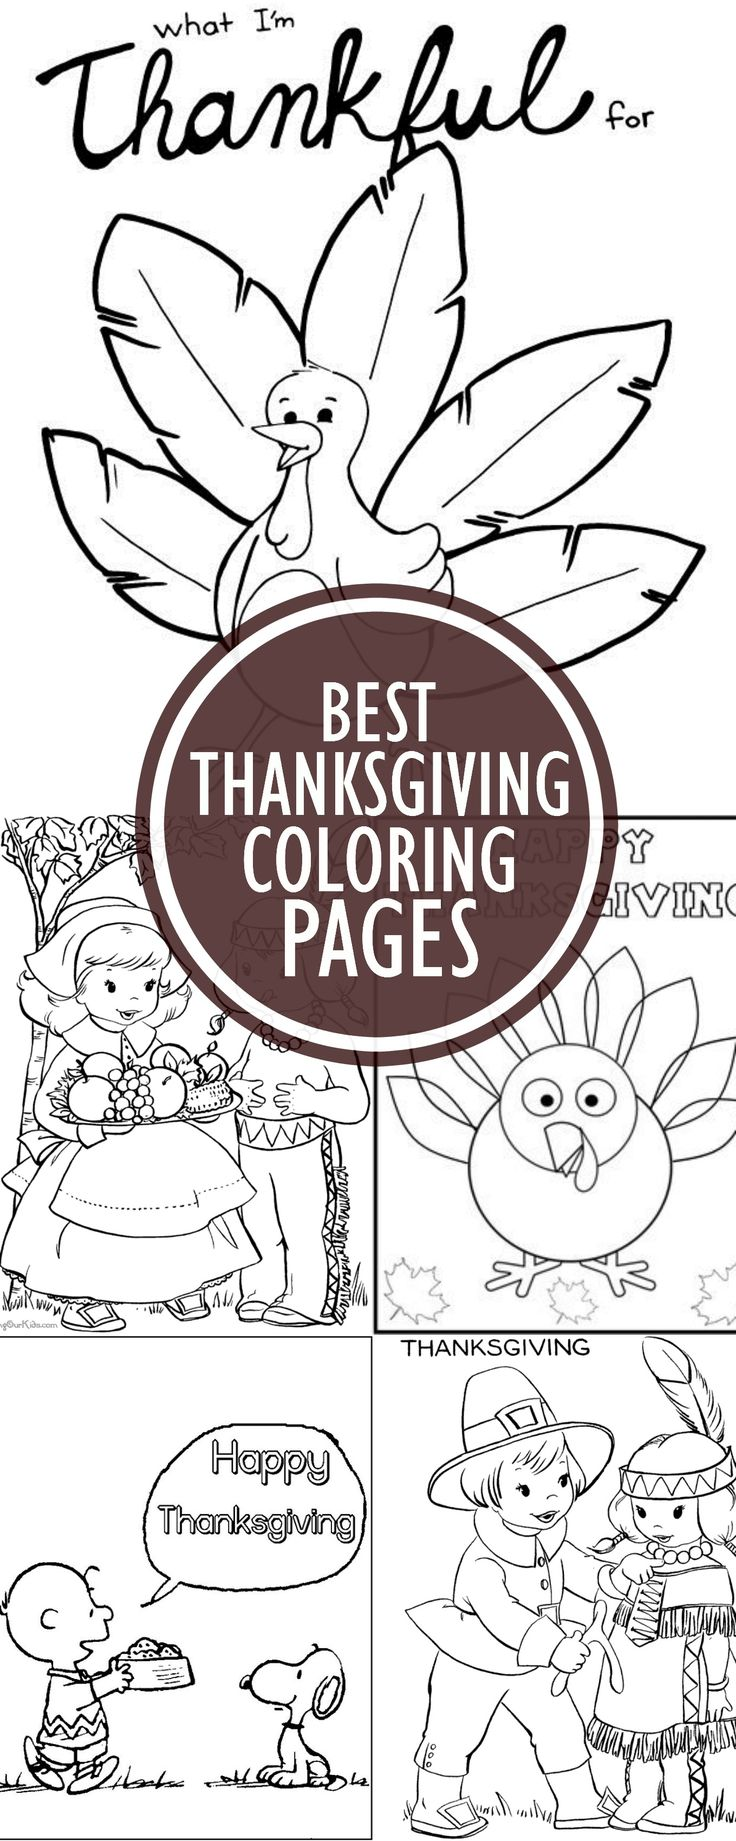 Disney coloring pages thanksgiving - Top 10 Free Printable Disney Thanksgiving Coloring Pages Online